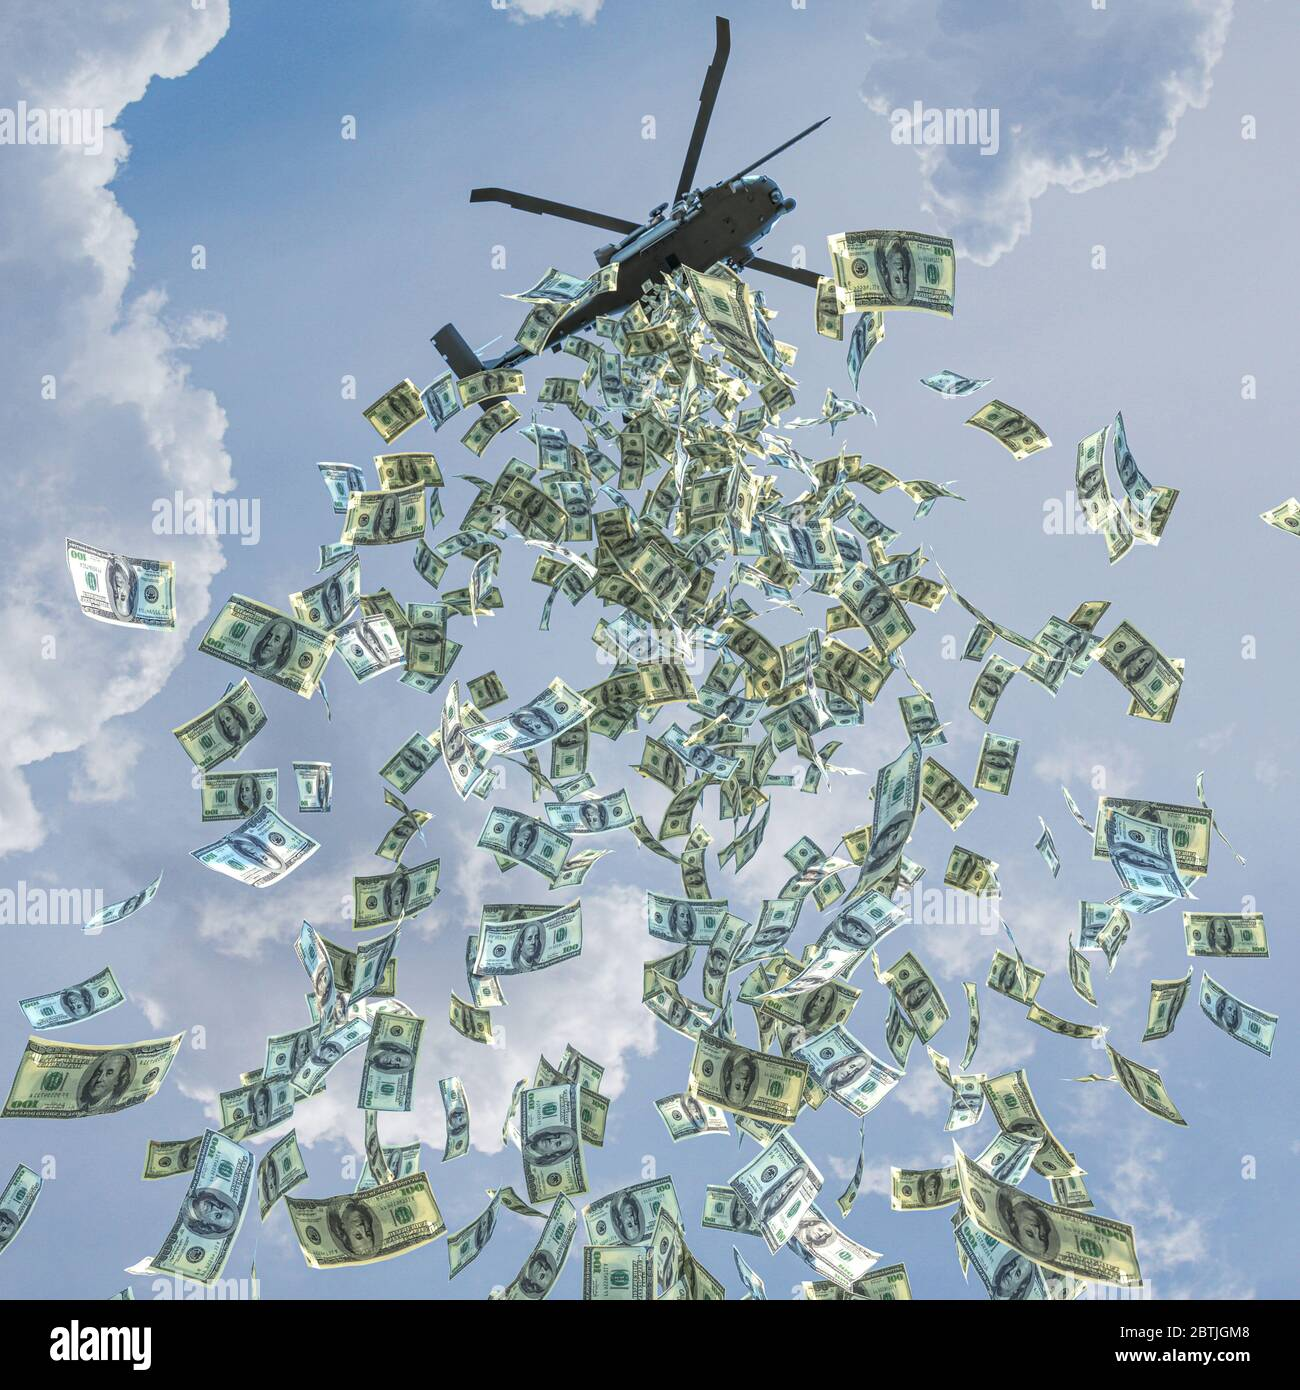 Helicopter money concept, dollars are spread out to increase financial liquidity. Economy and finance. 3d render. Stock Photo